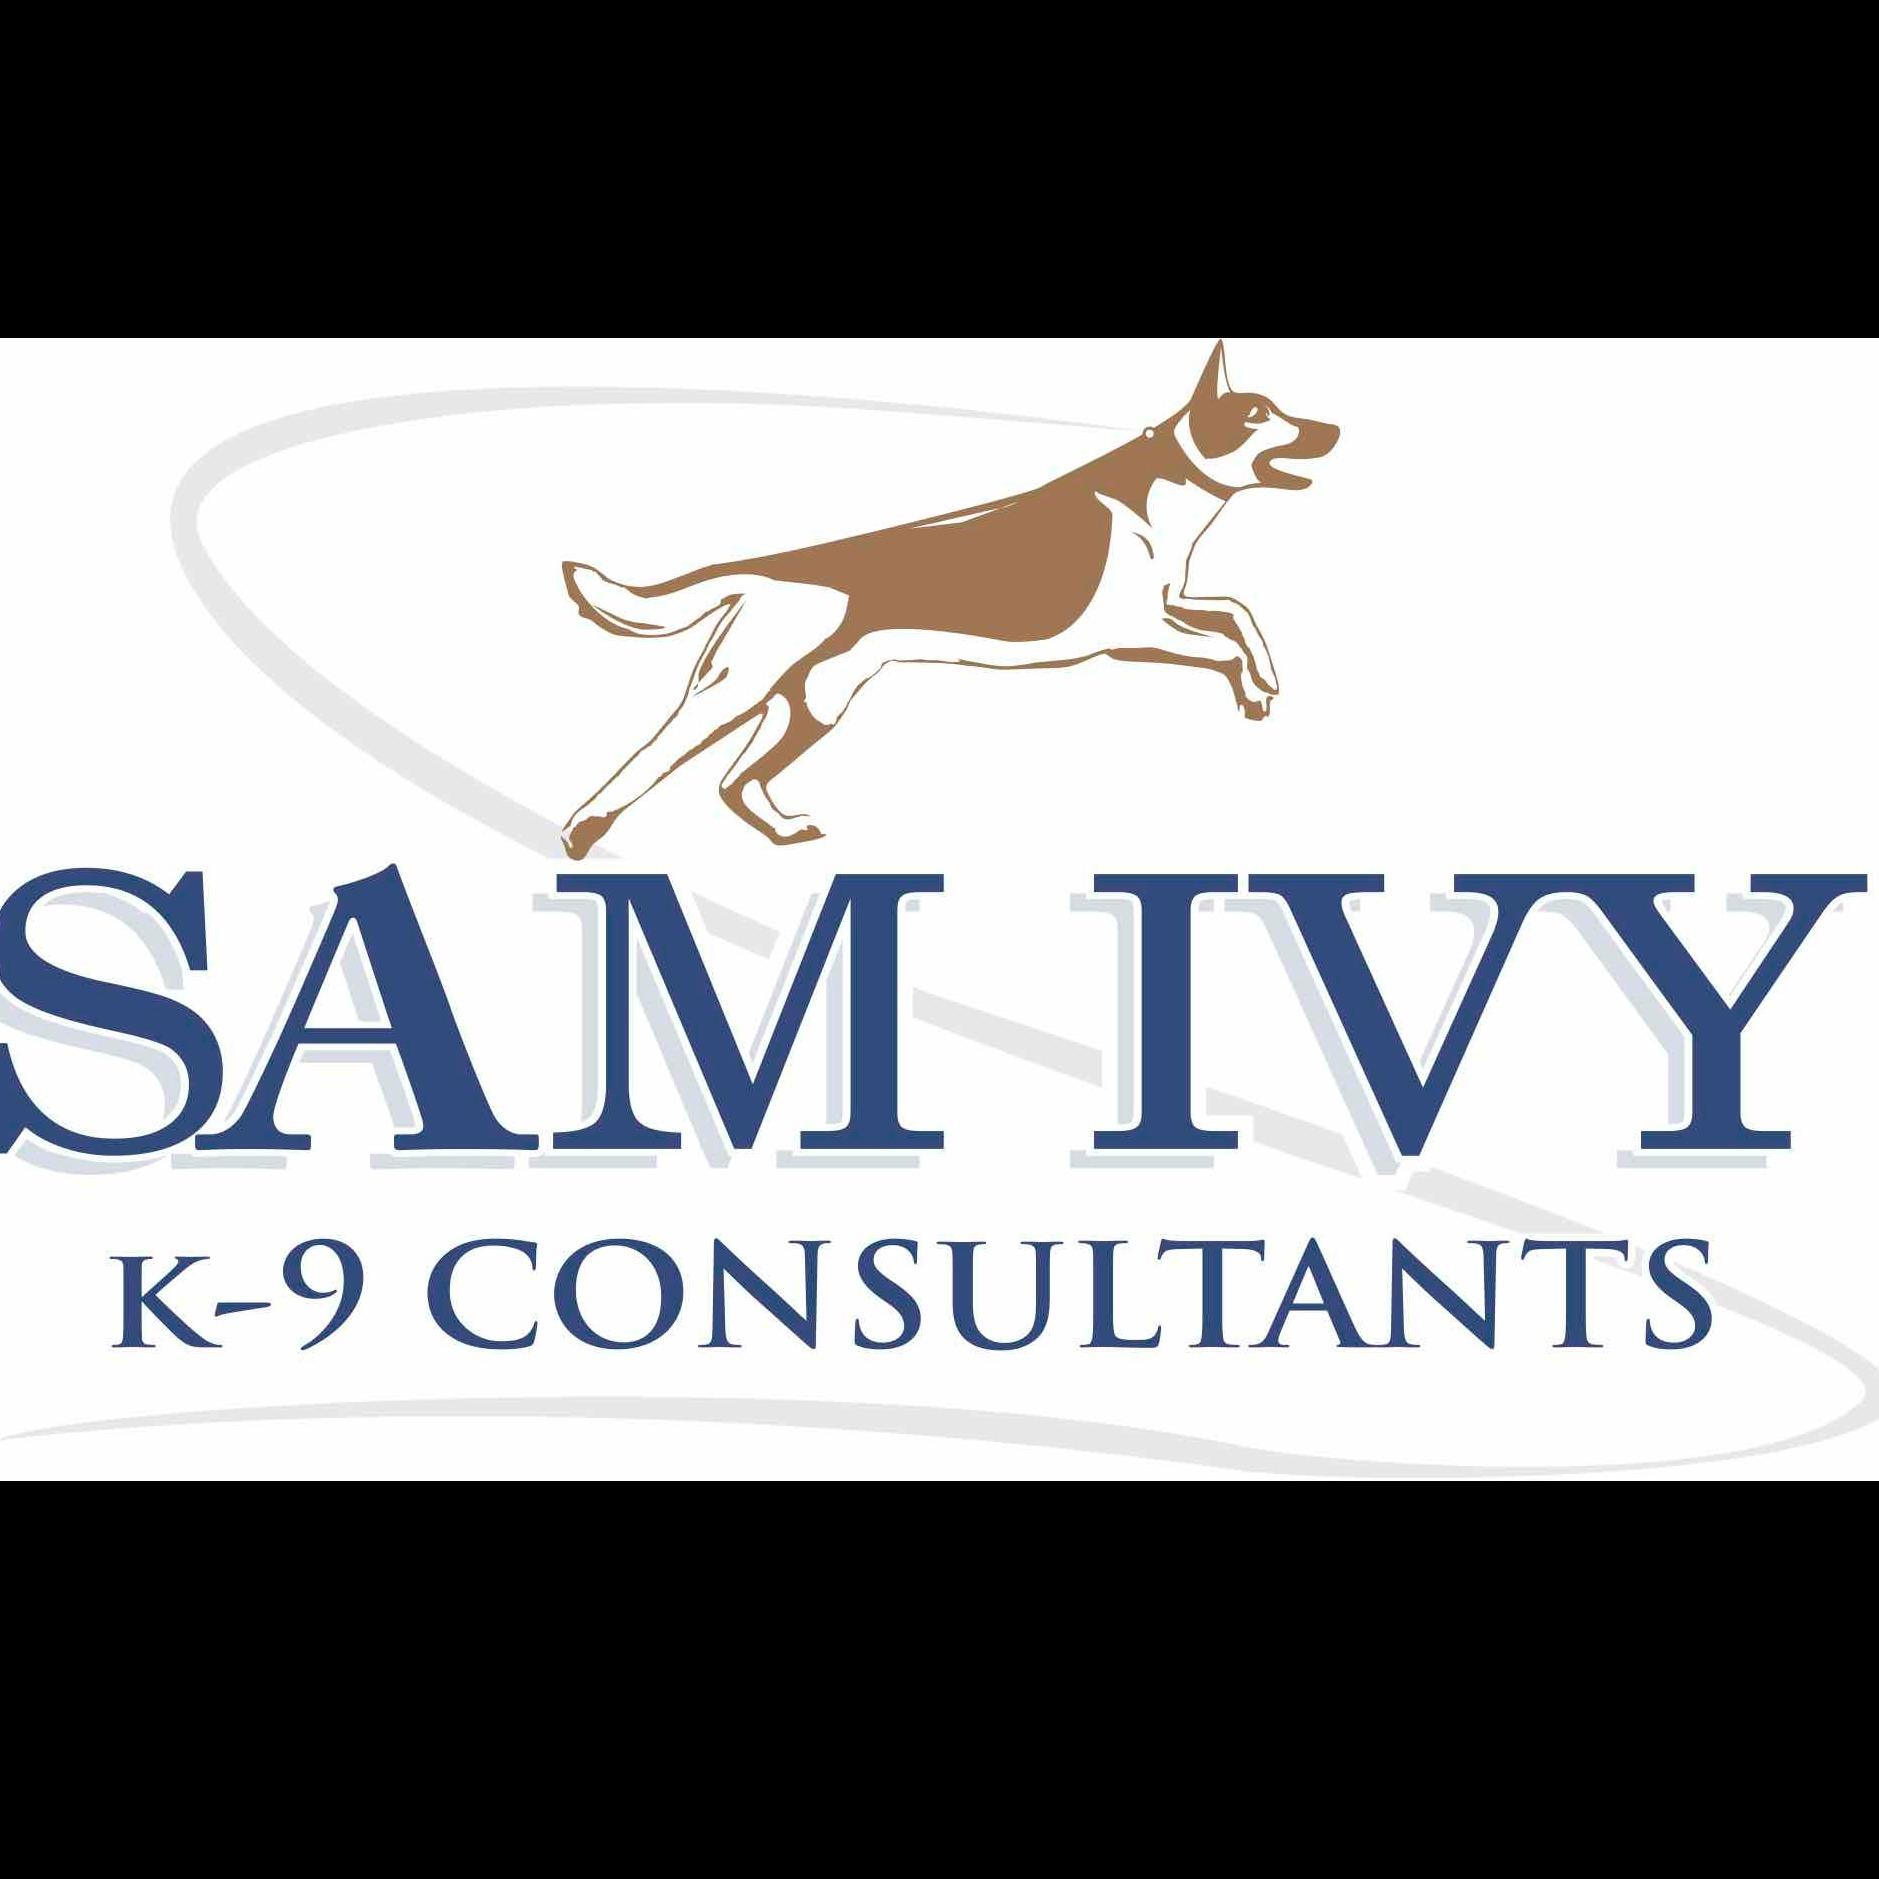 Sam Ivy K9 Consultants Inc.